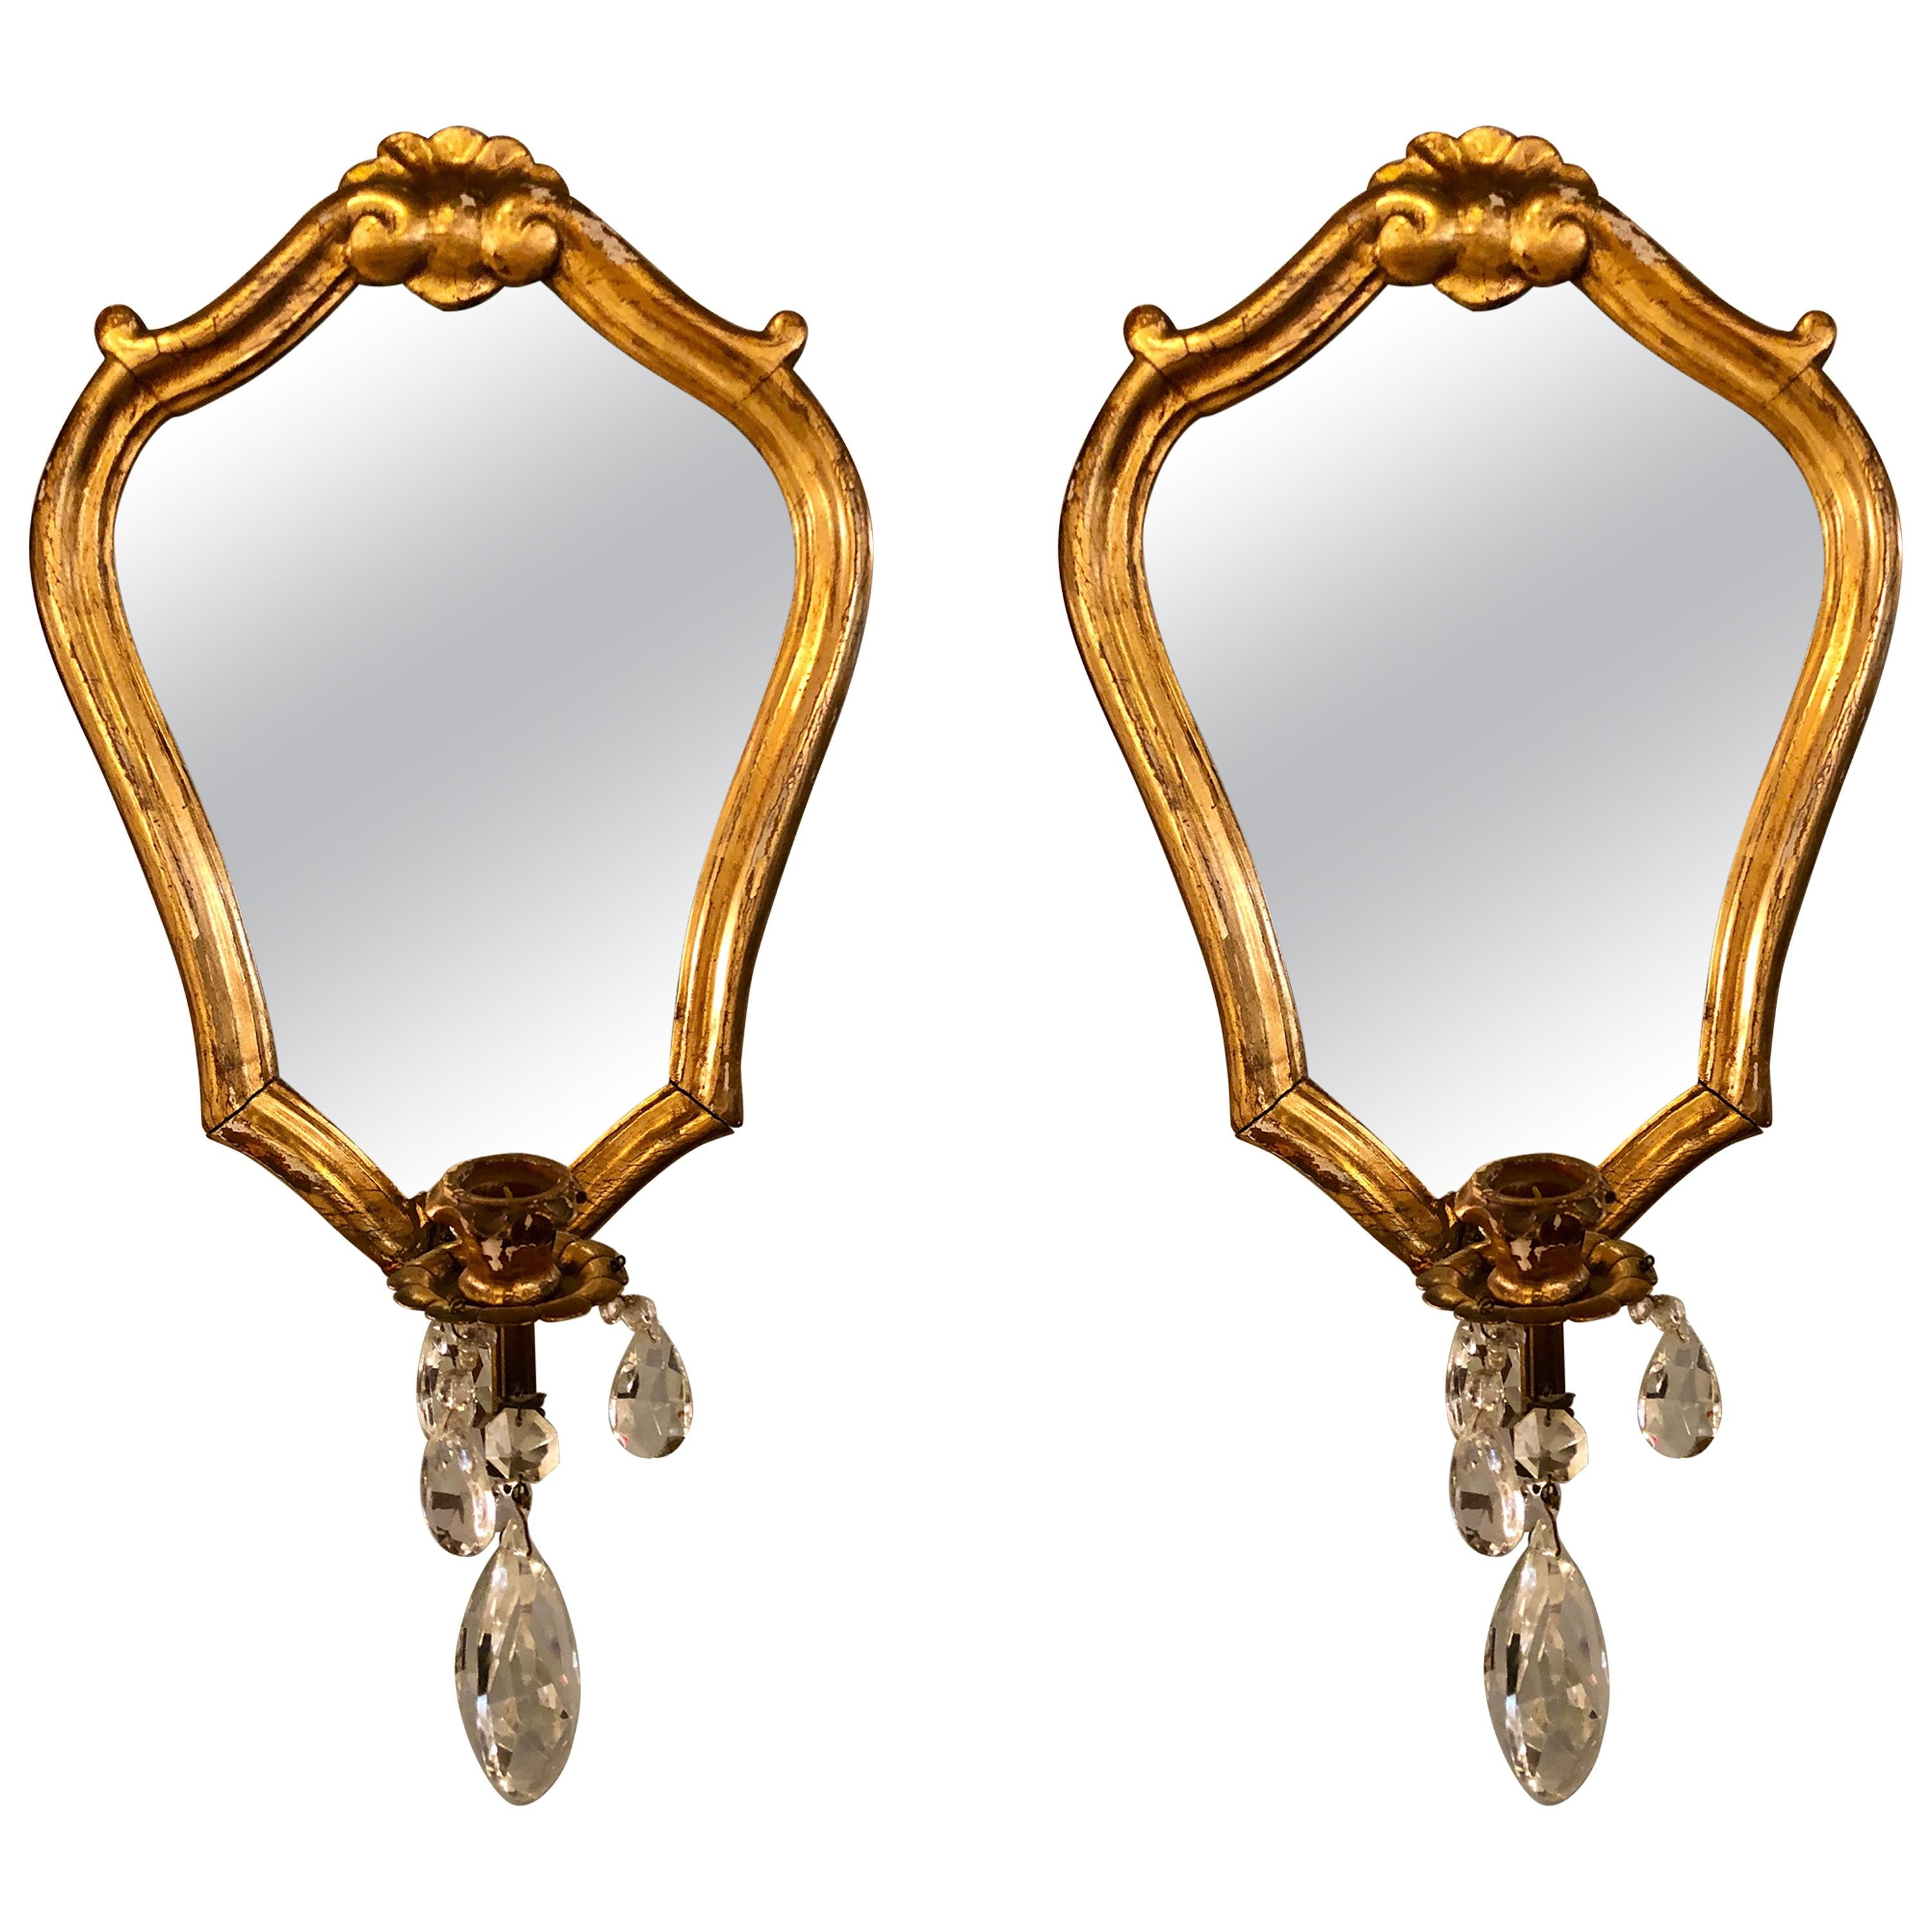 Pair of Wall Sconces with Crystals in Giltwood Heart Shaped